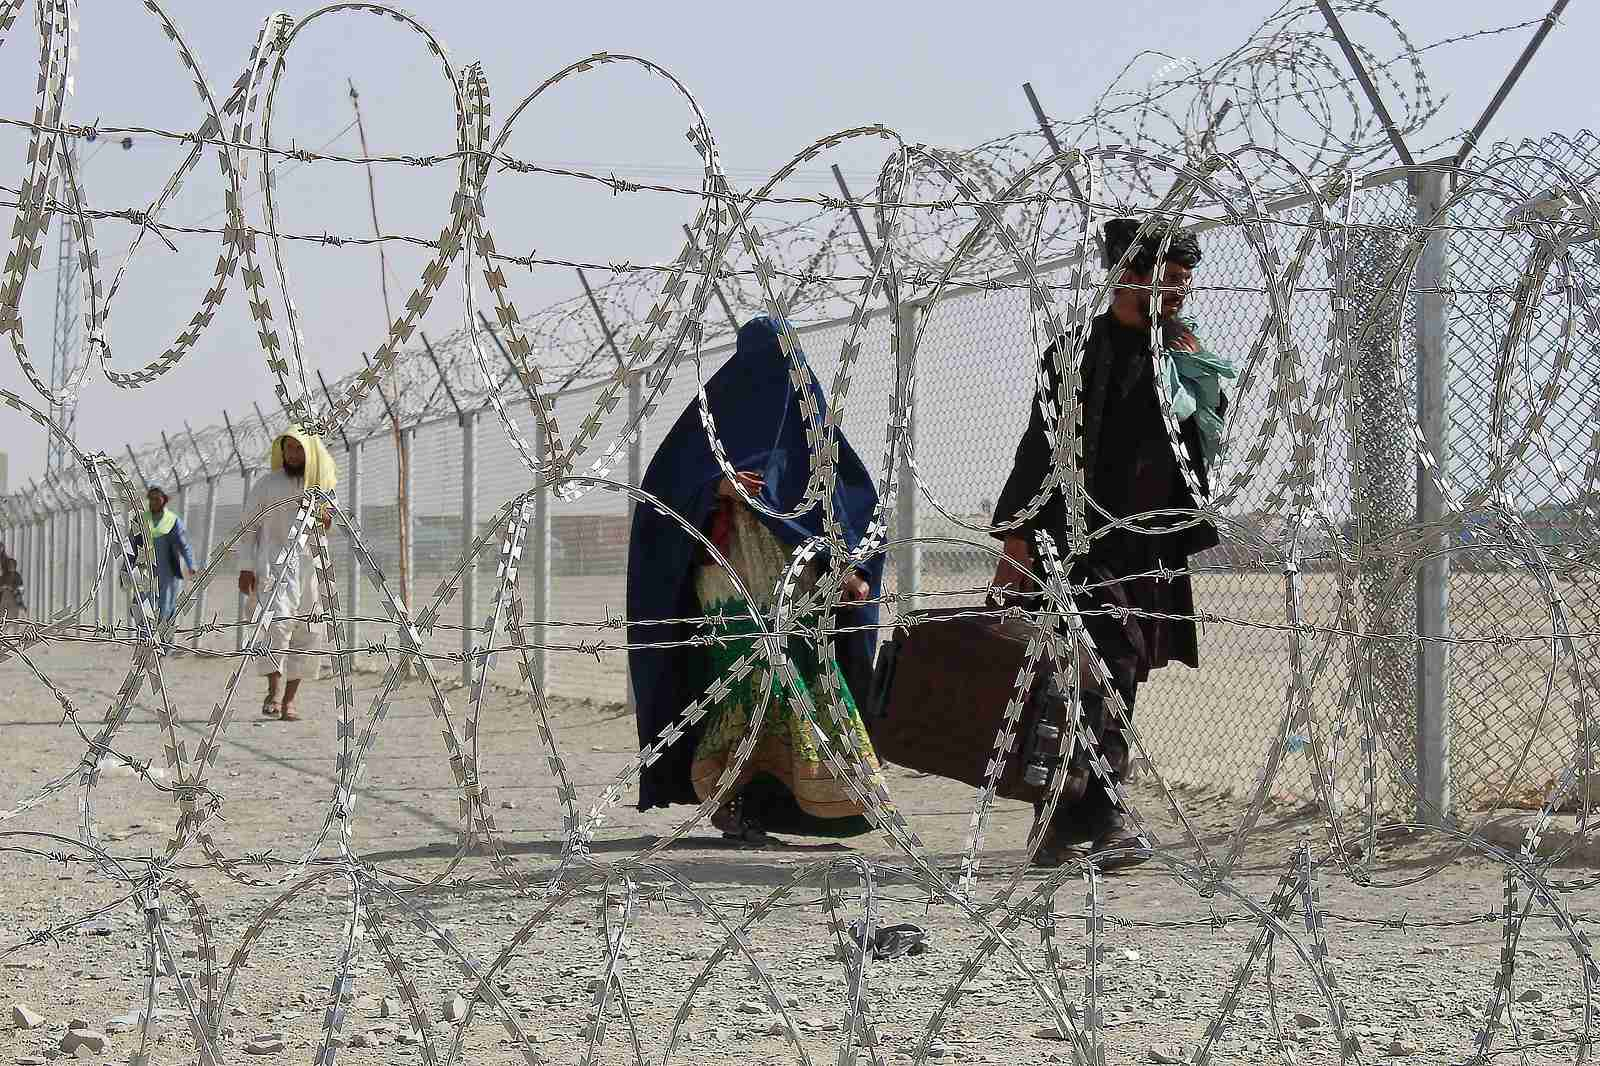 The border between Afghanistan and Pakistan is notoriously porous. Pakistan-Afghanistan border crossing point in Chaman, 28 August 2021 (AFP via Getty Images)